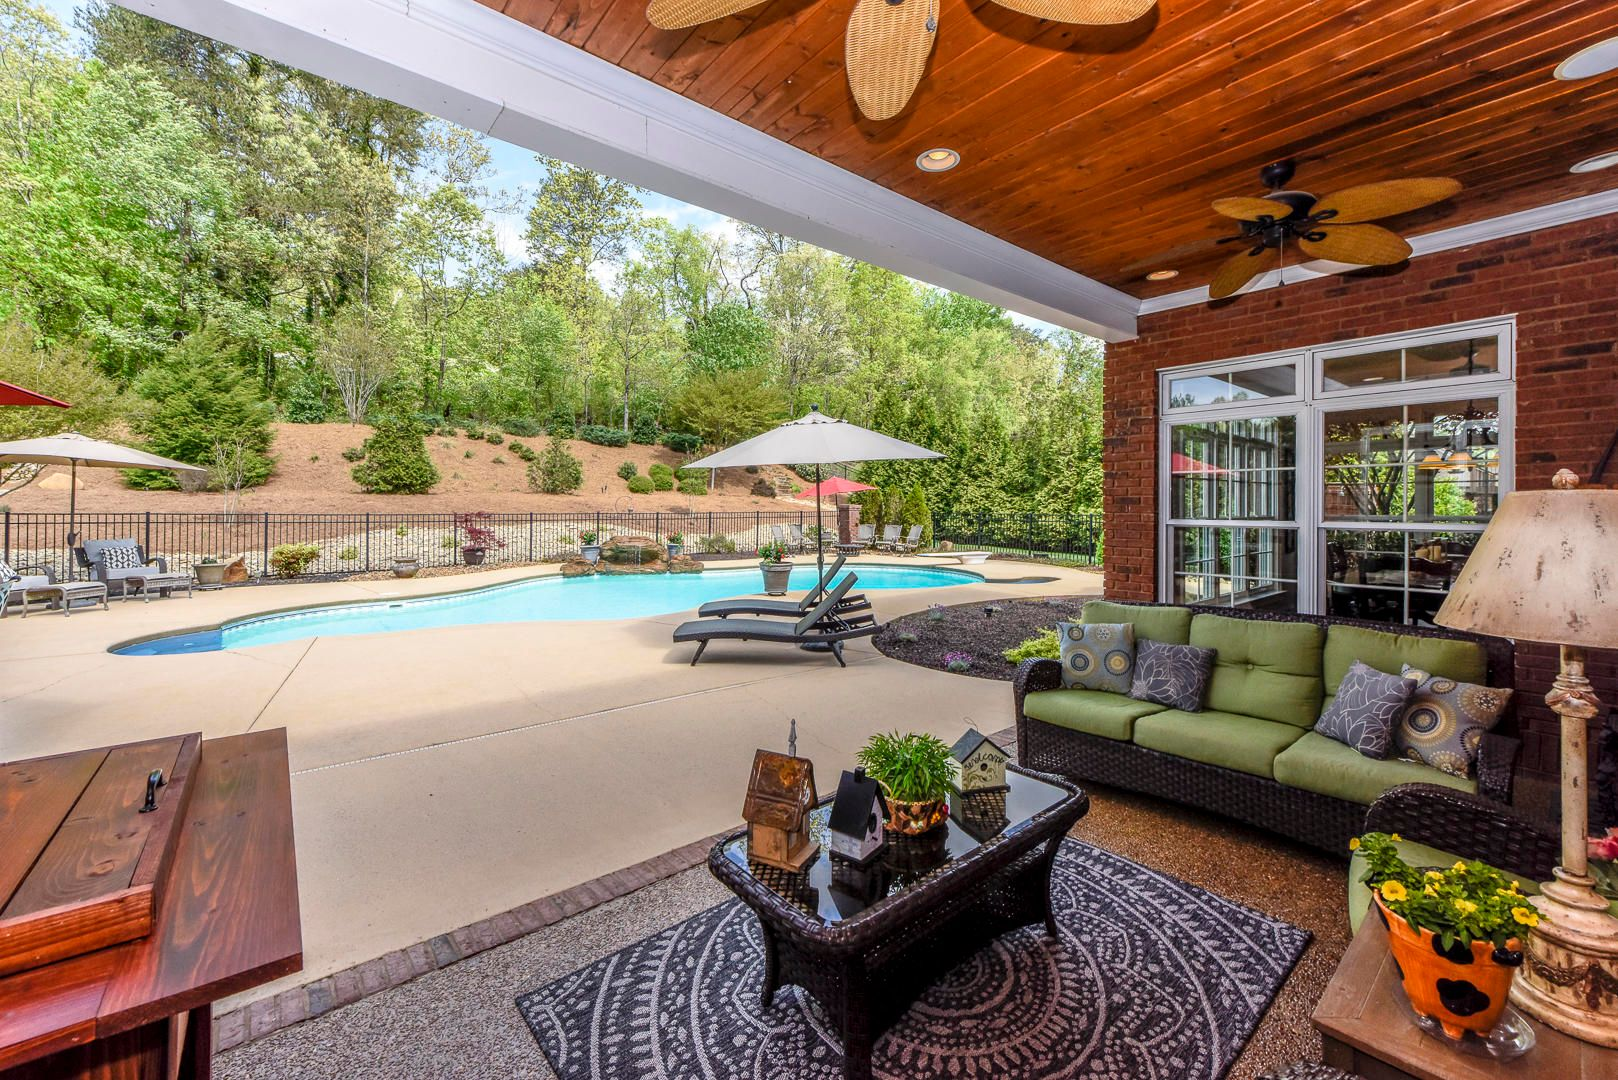 Covered porch and Pool